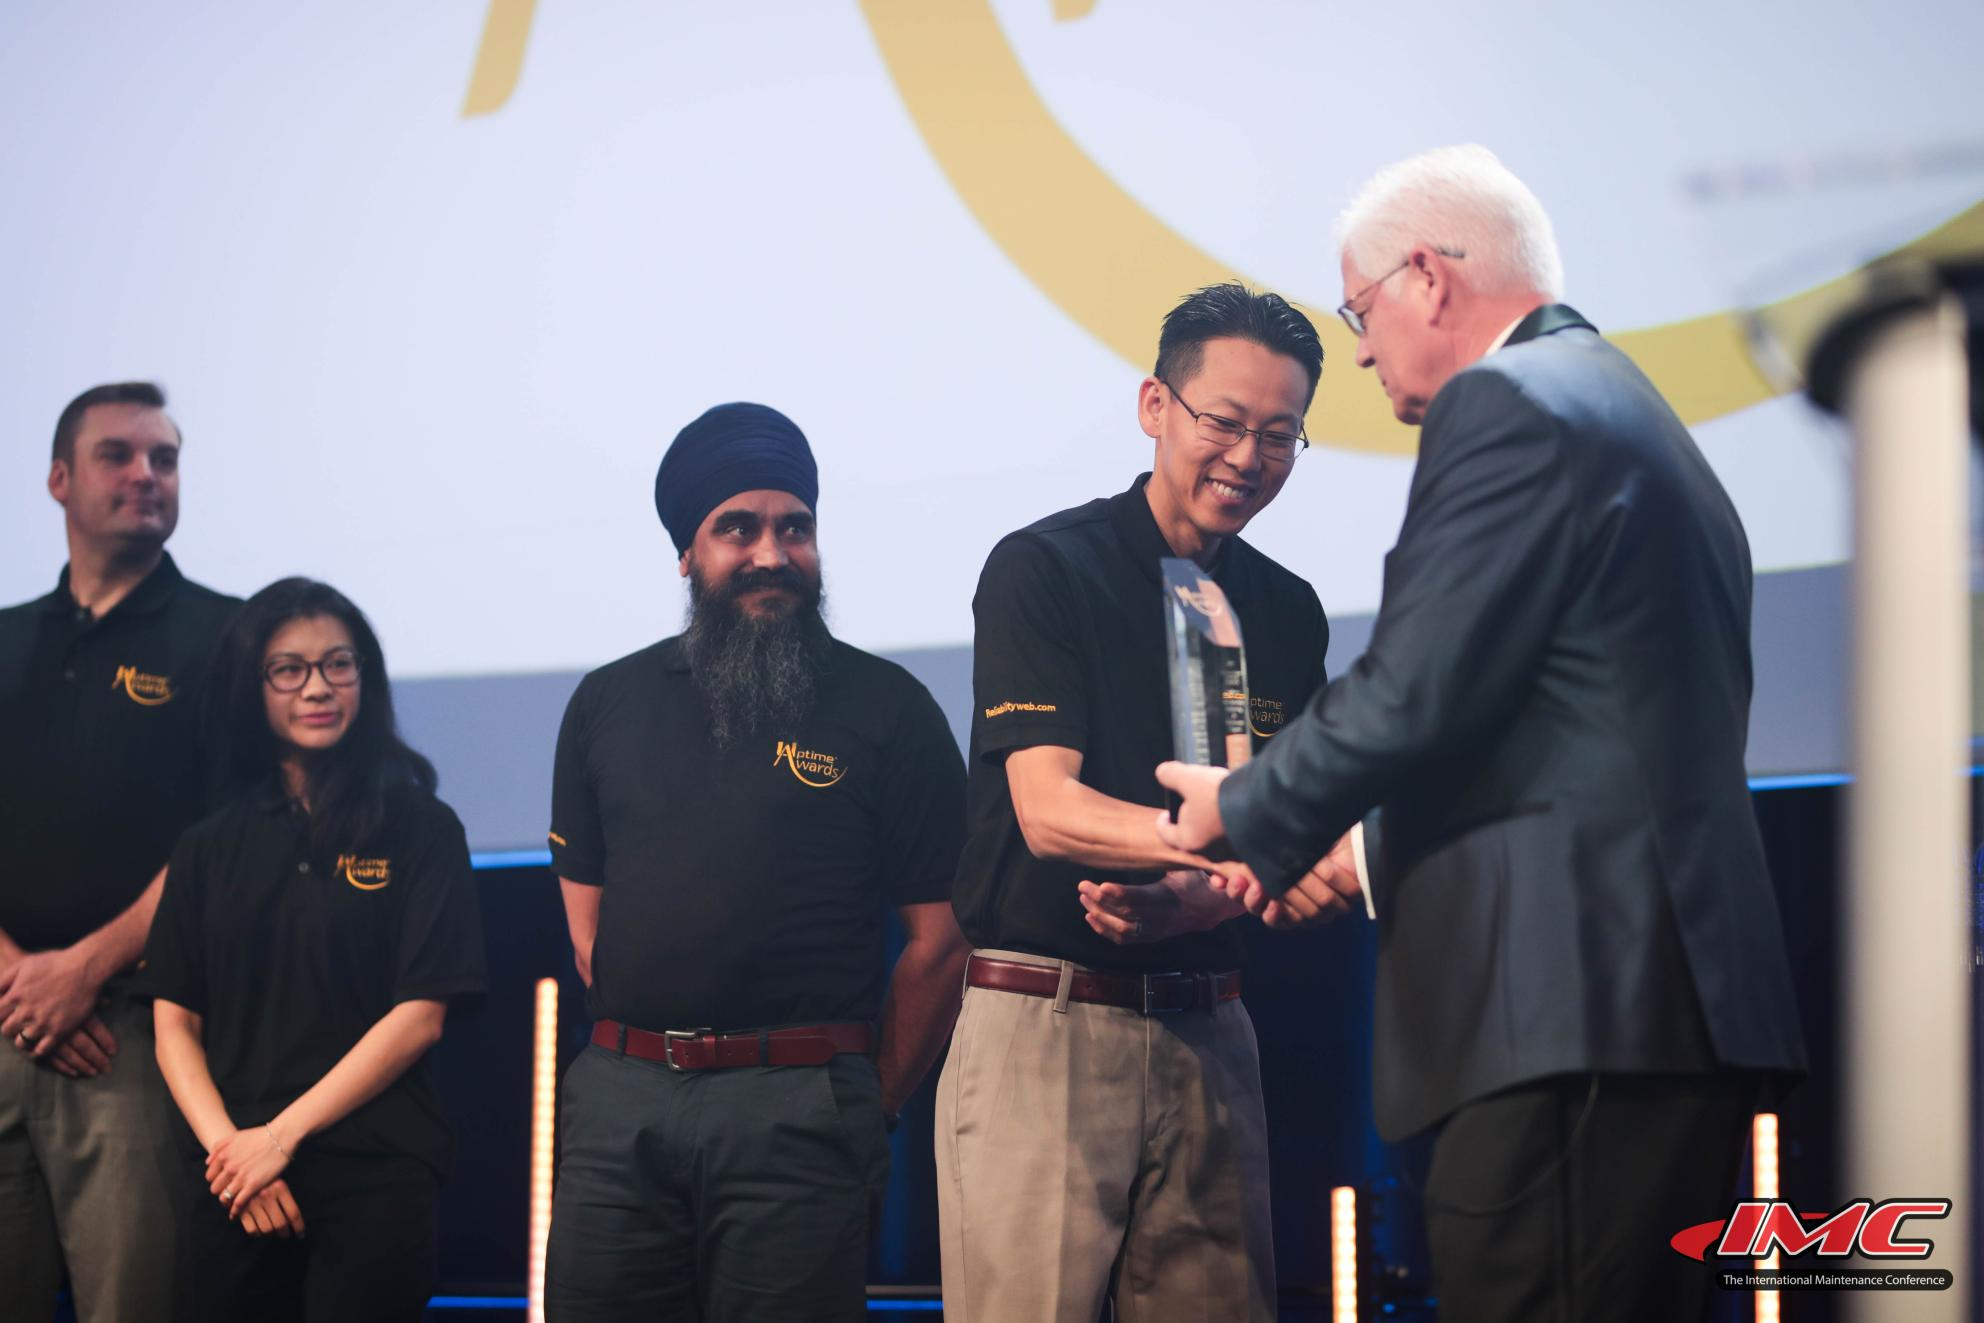 Andy Yang and team accepting Uptime award